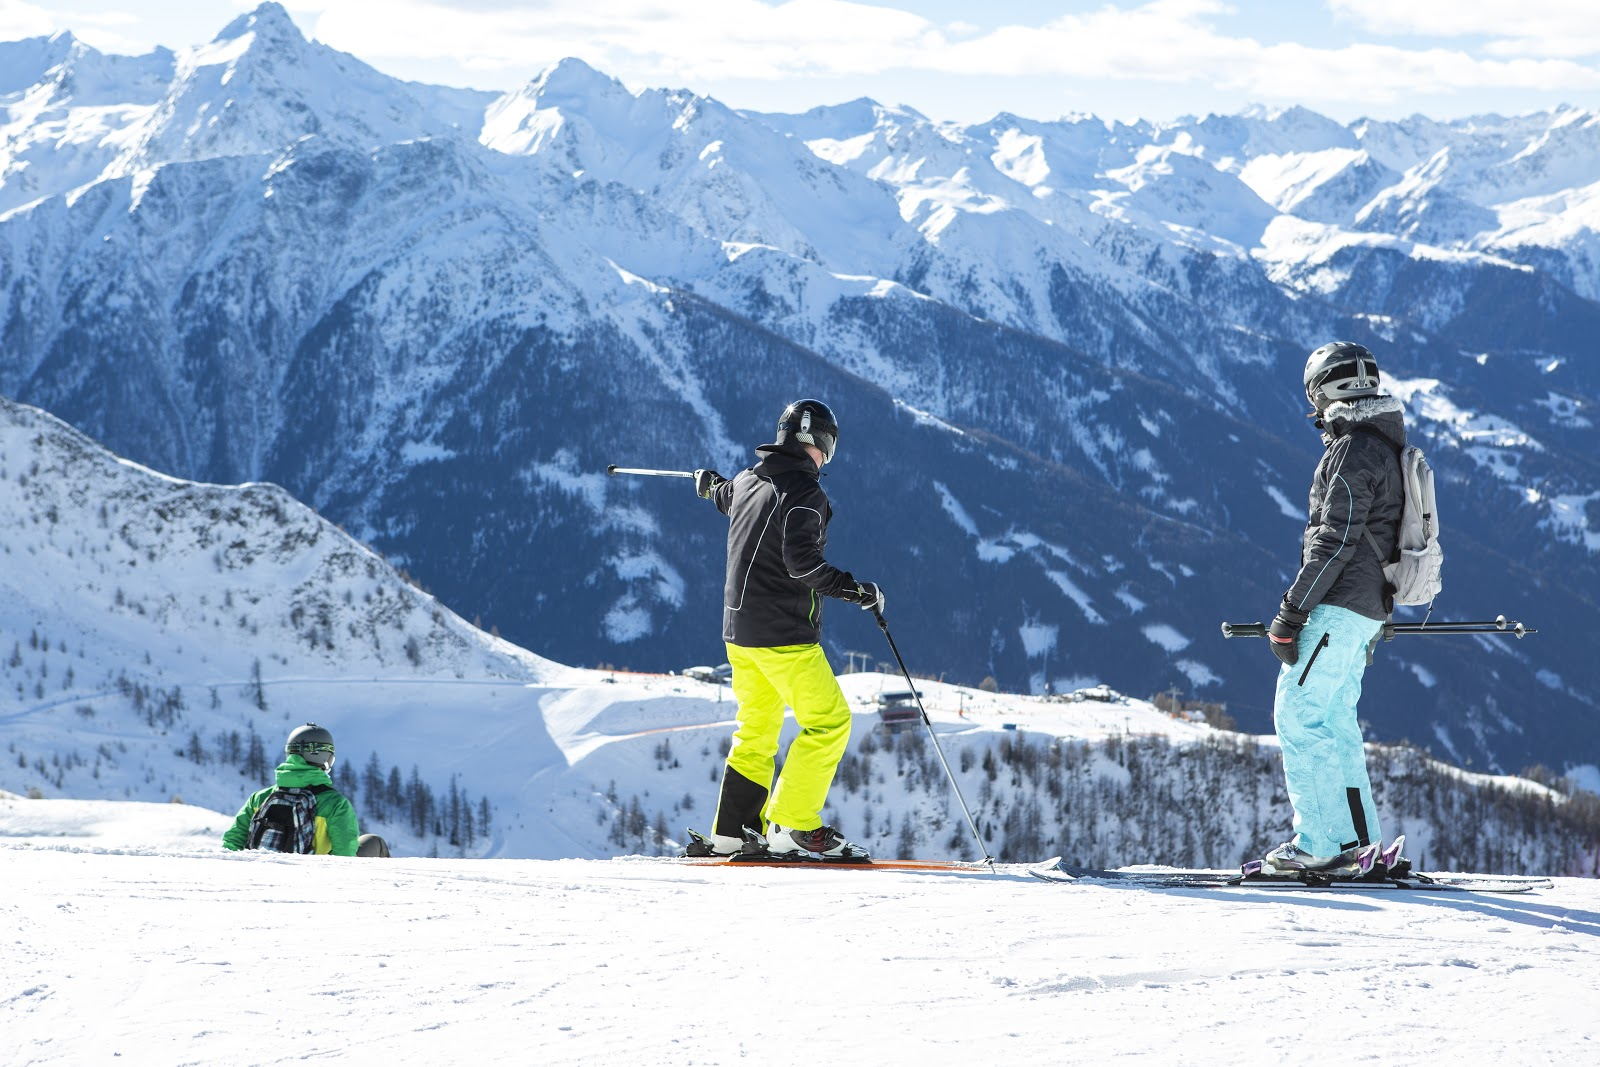 People on a high slope skiing